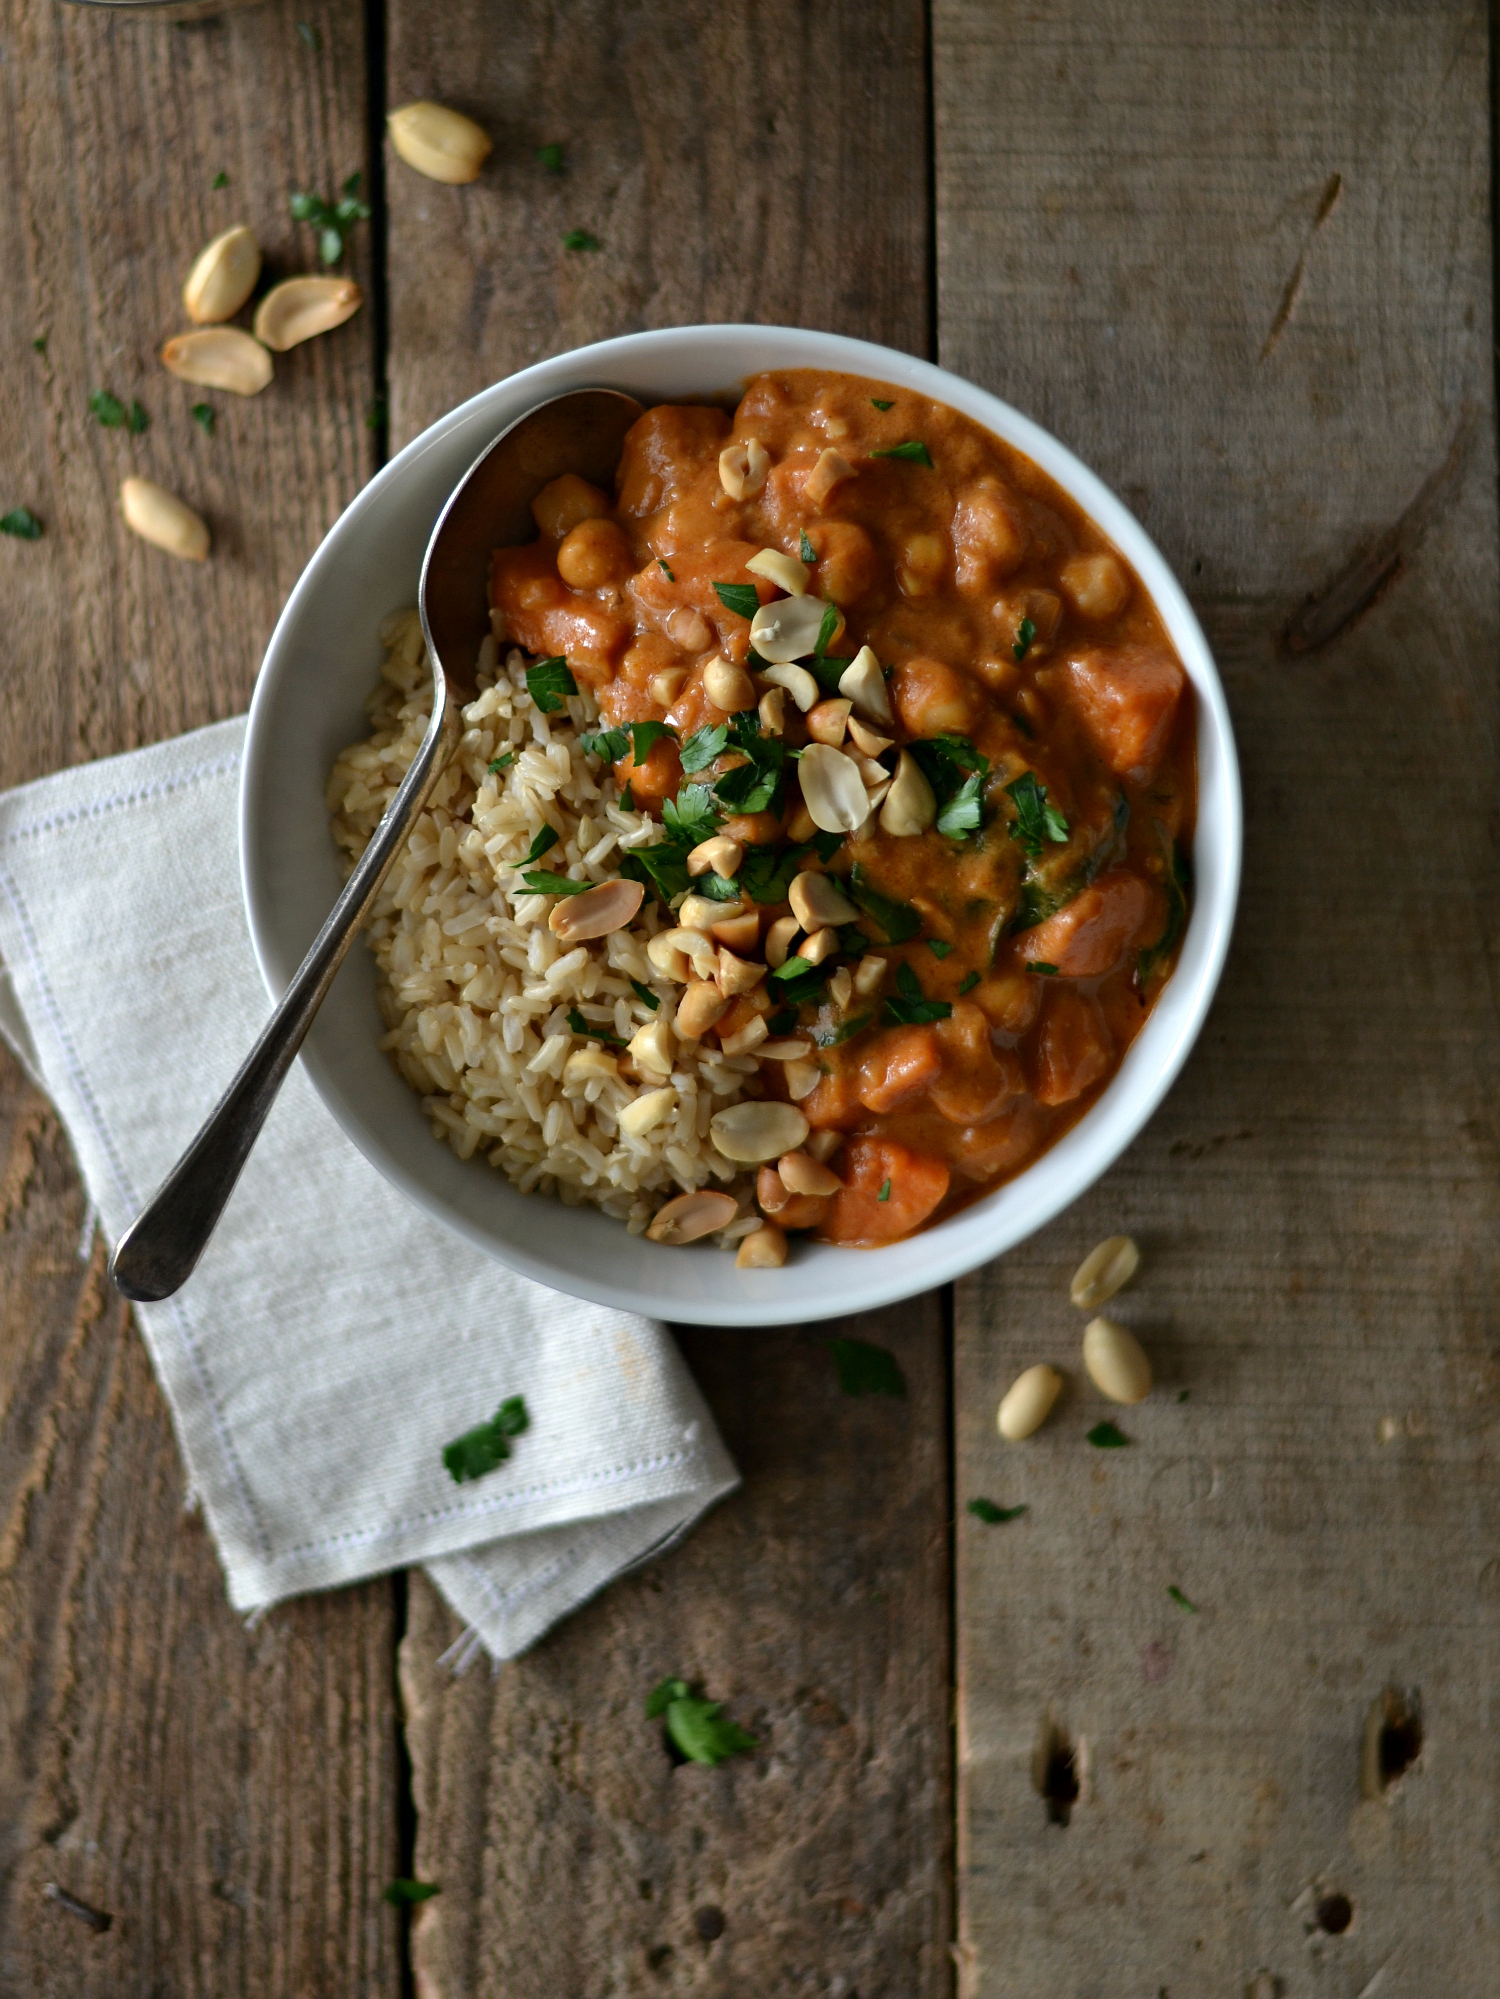 Peanut butter sweet potato stew2